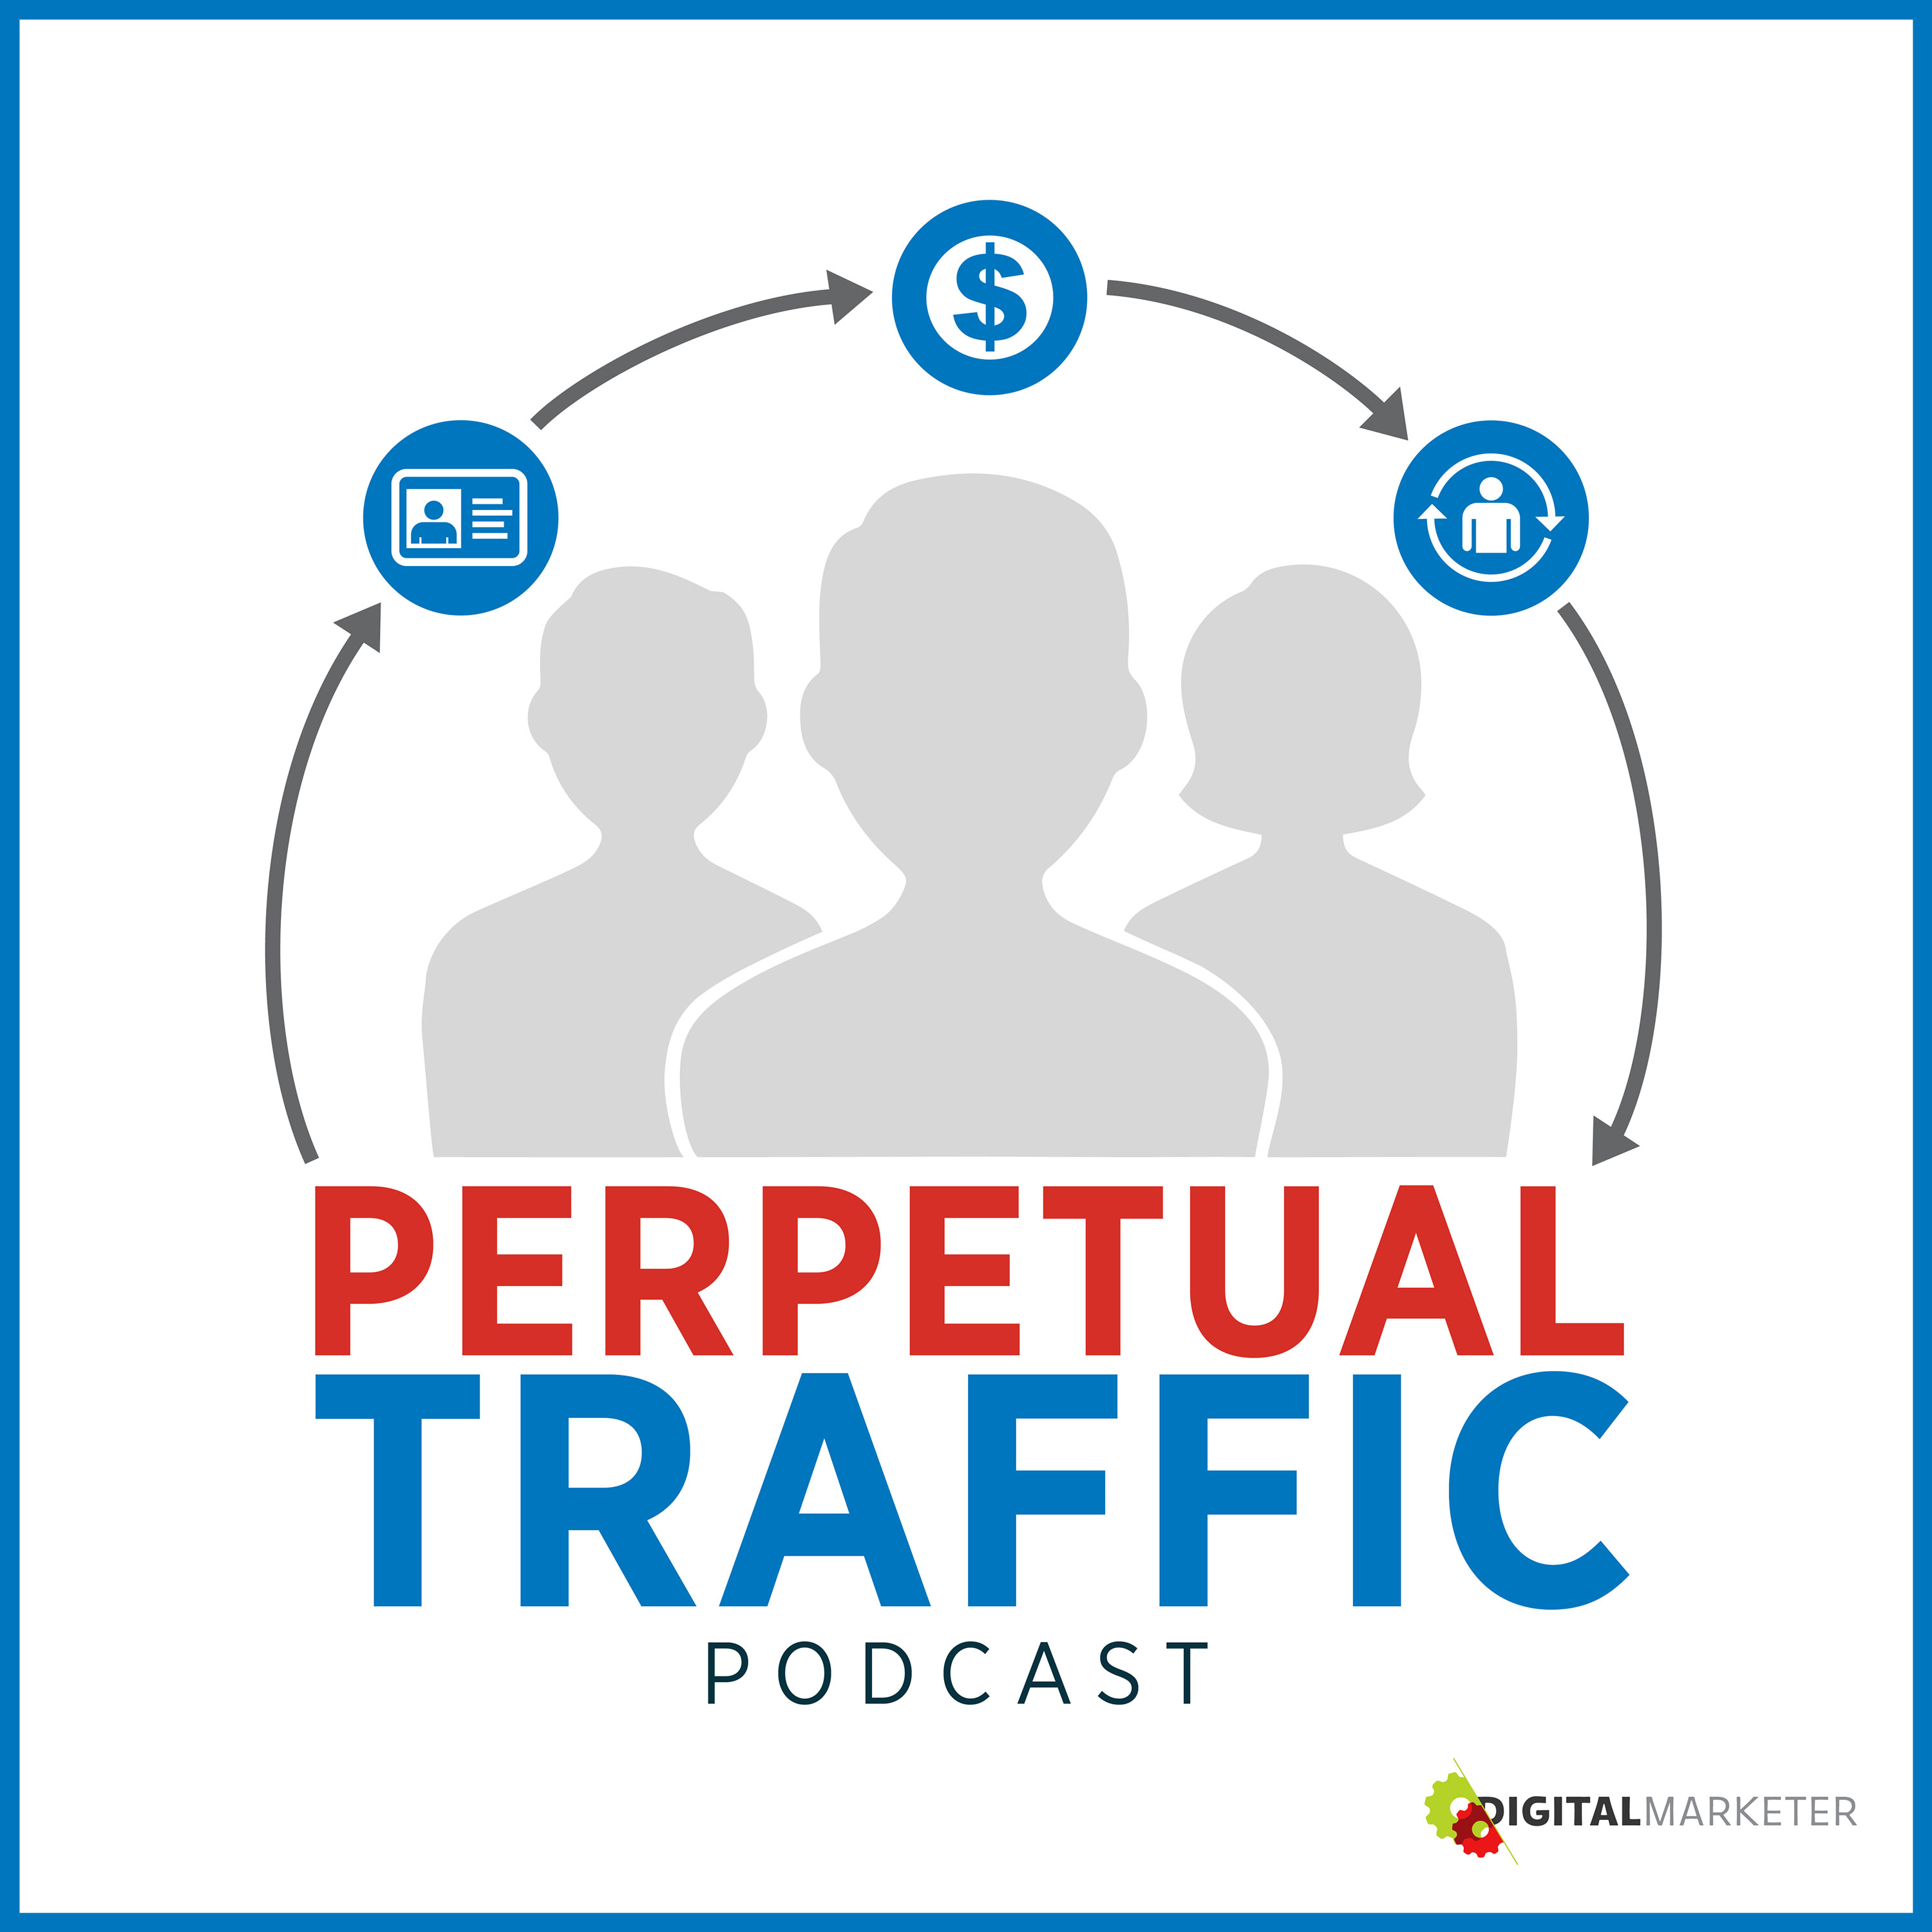 Perpetual Traffic Podcast provides actionable advice for building a traffic machine